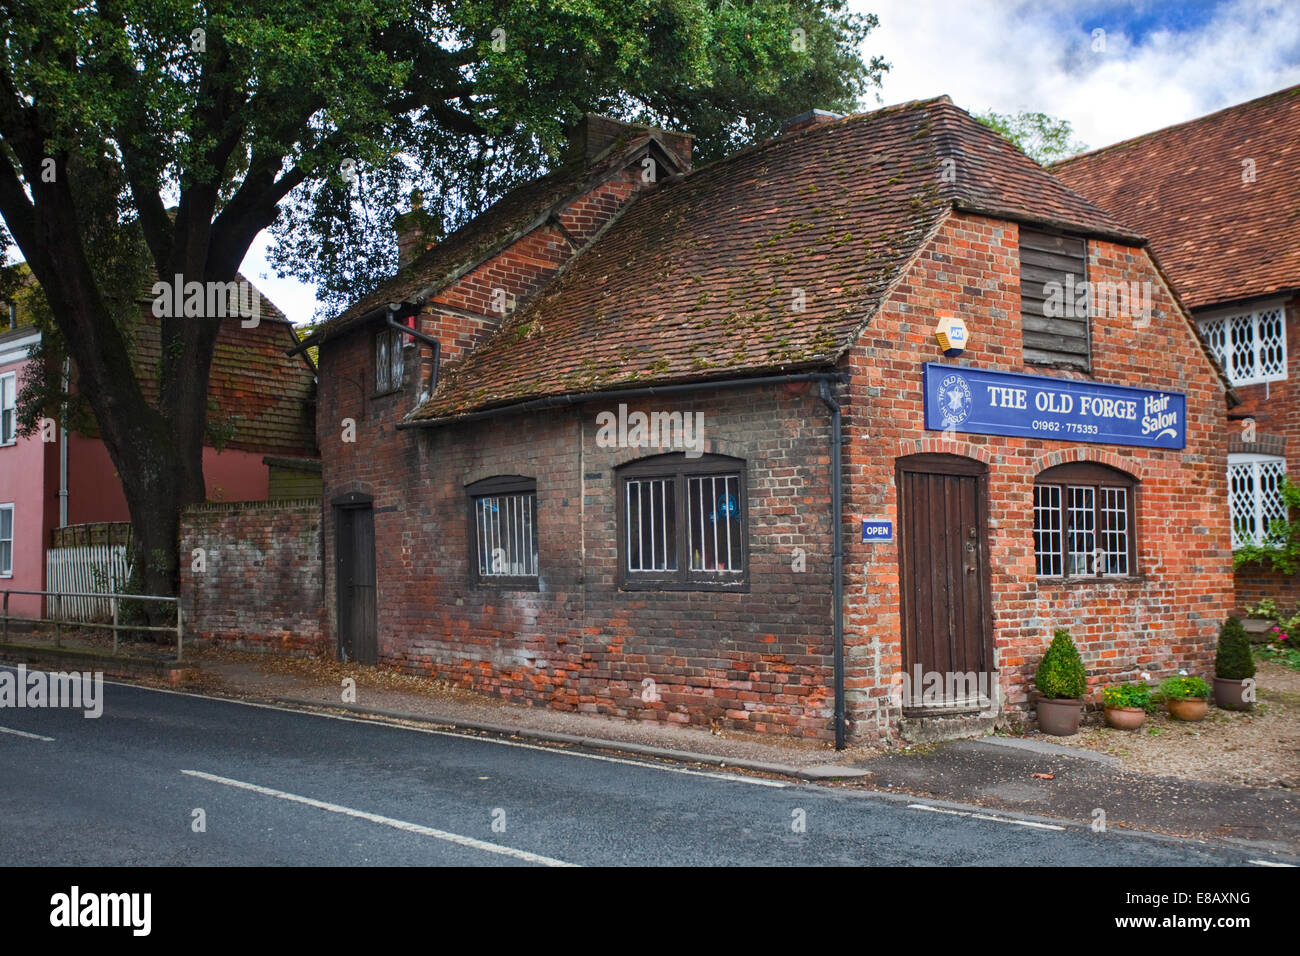 The Old Forge, Hursley, Hampshire, England - Stock Image